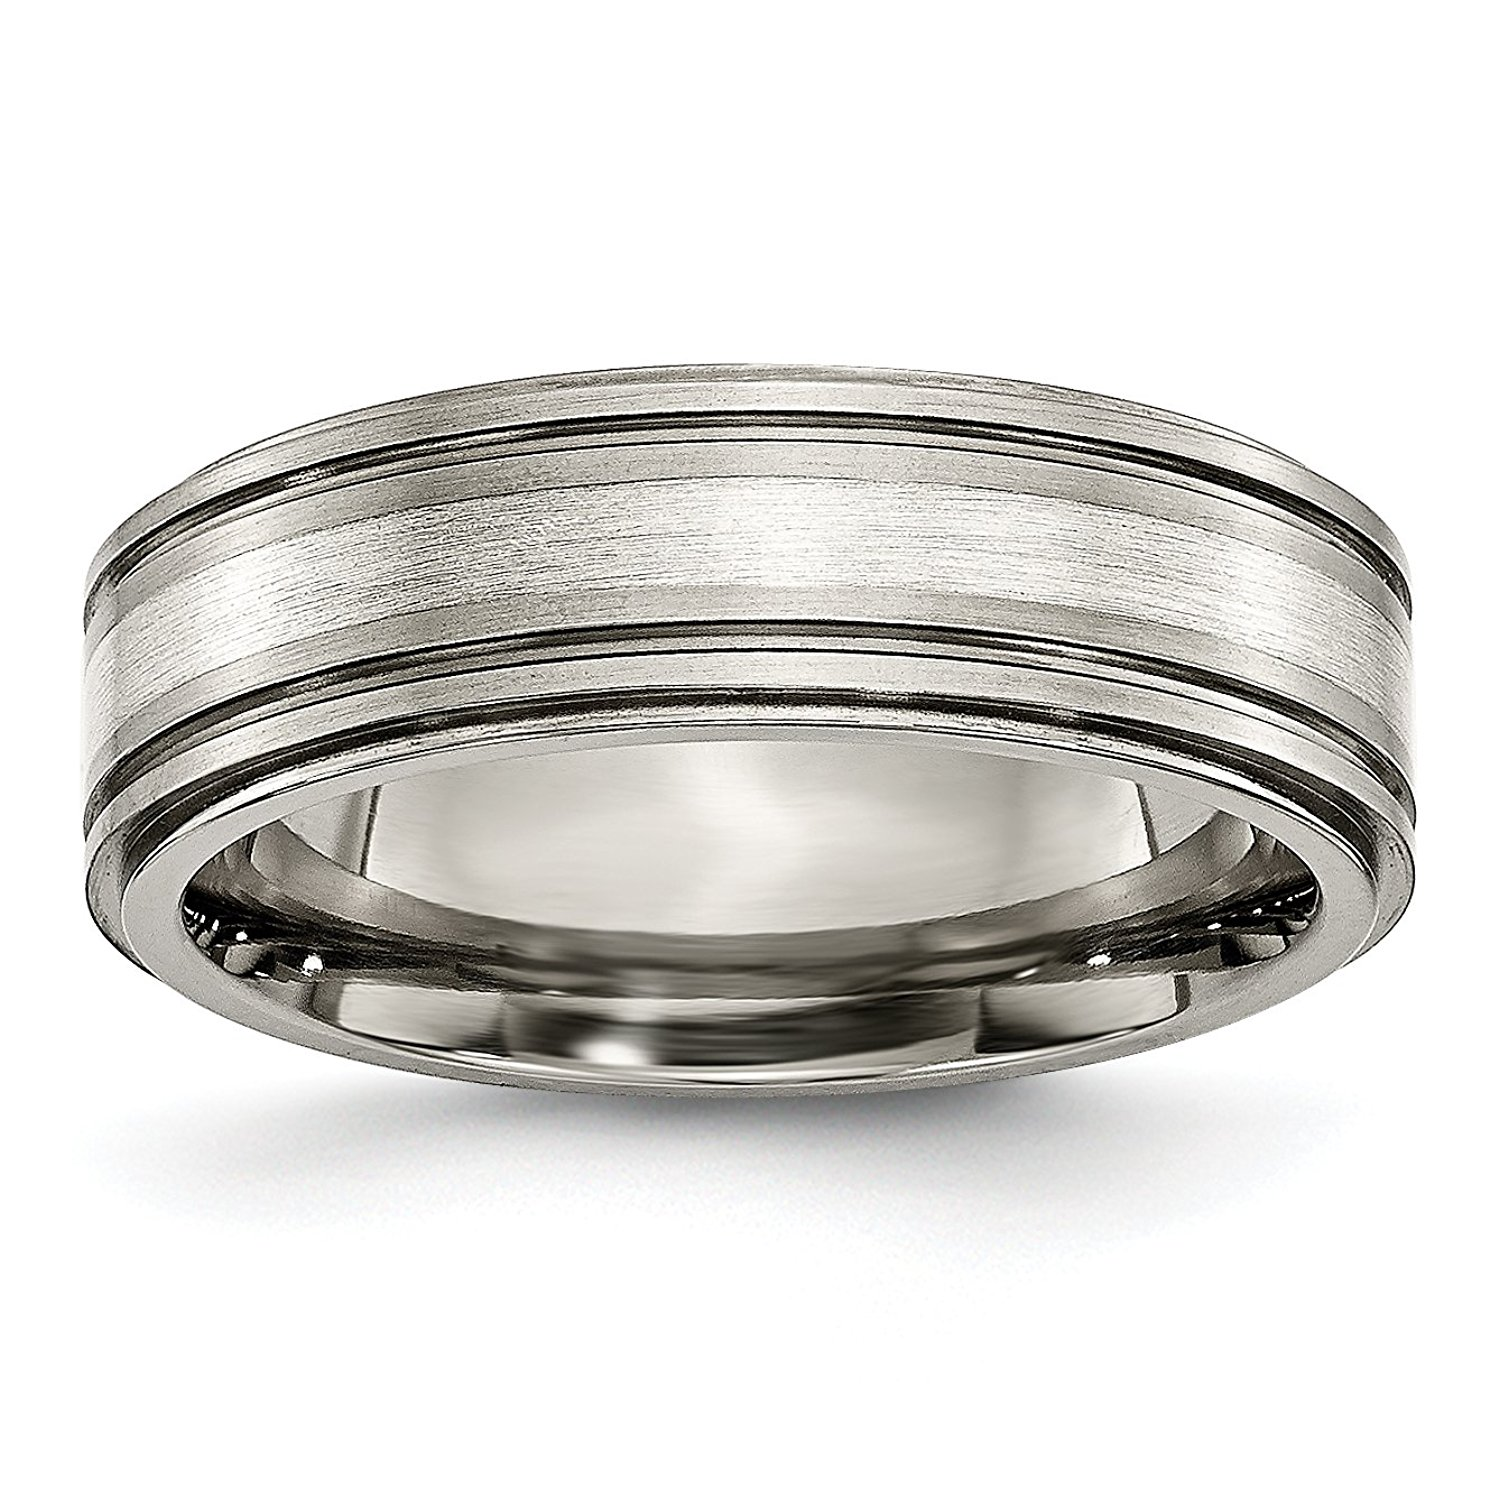 Titanium Grooved Ridged Edge 8mm Brushed and Polished Band Size 10.5 Length Width 8